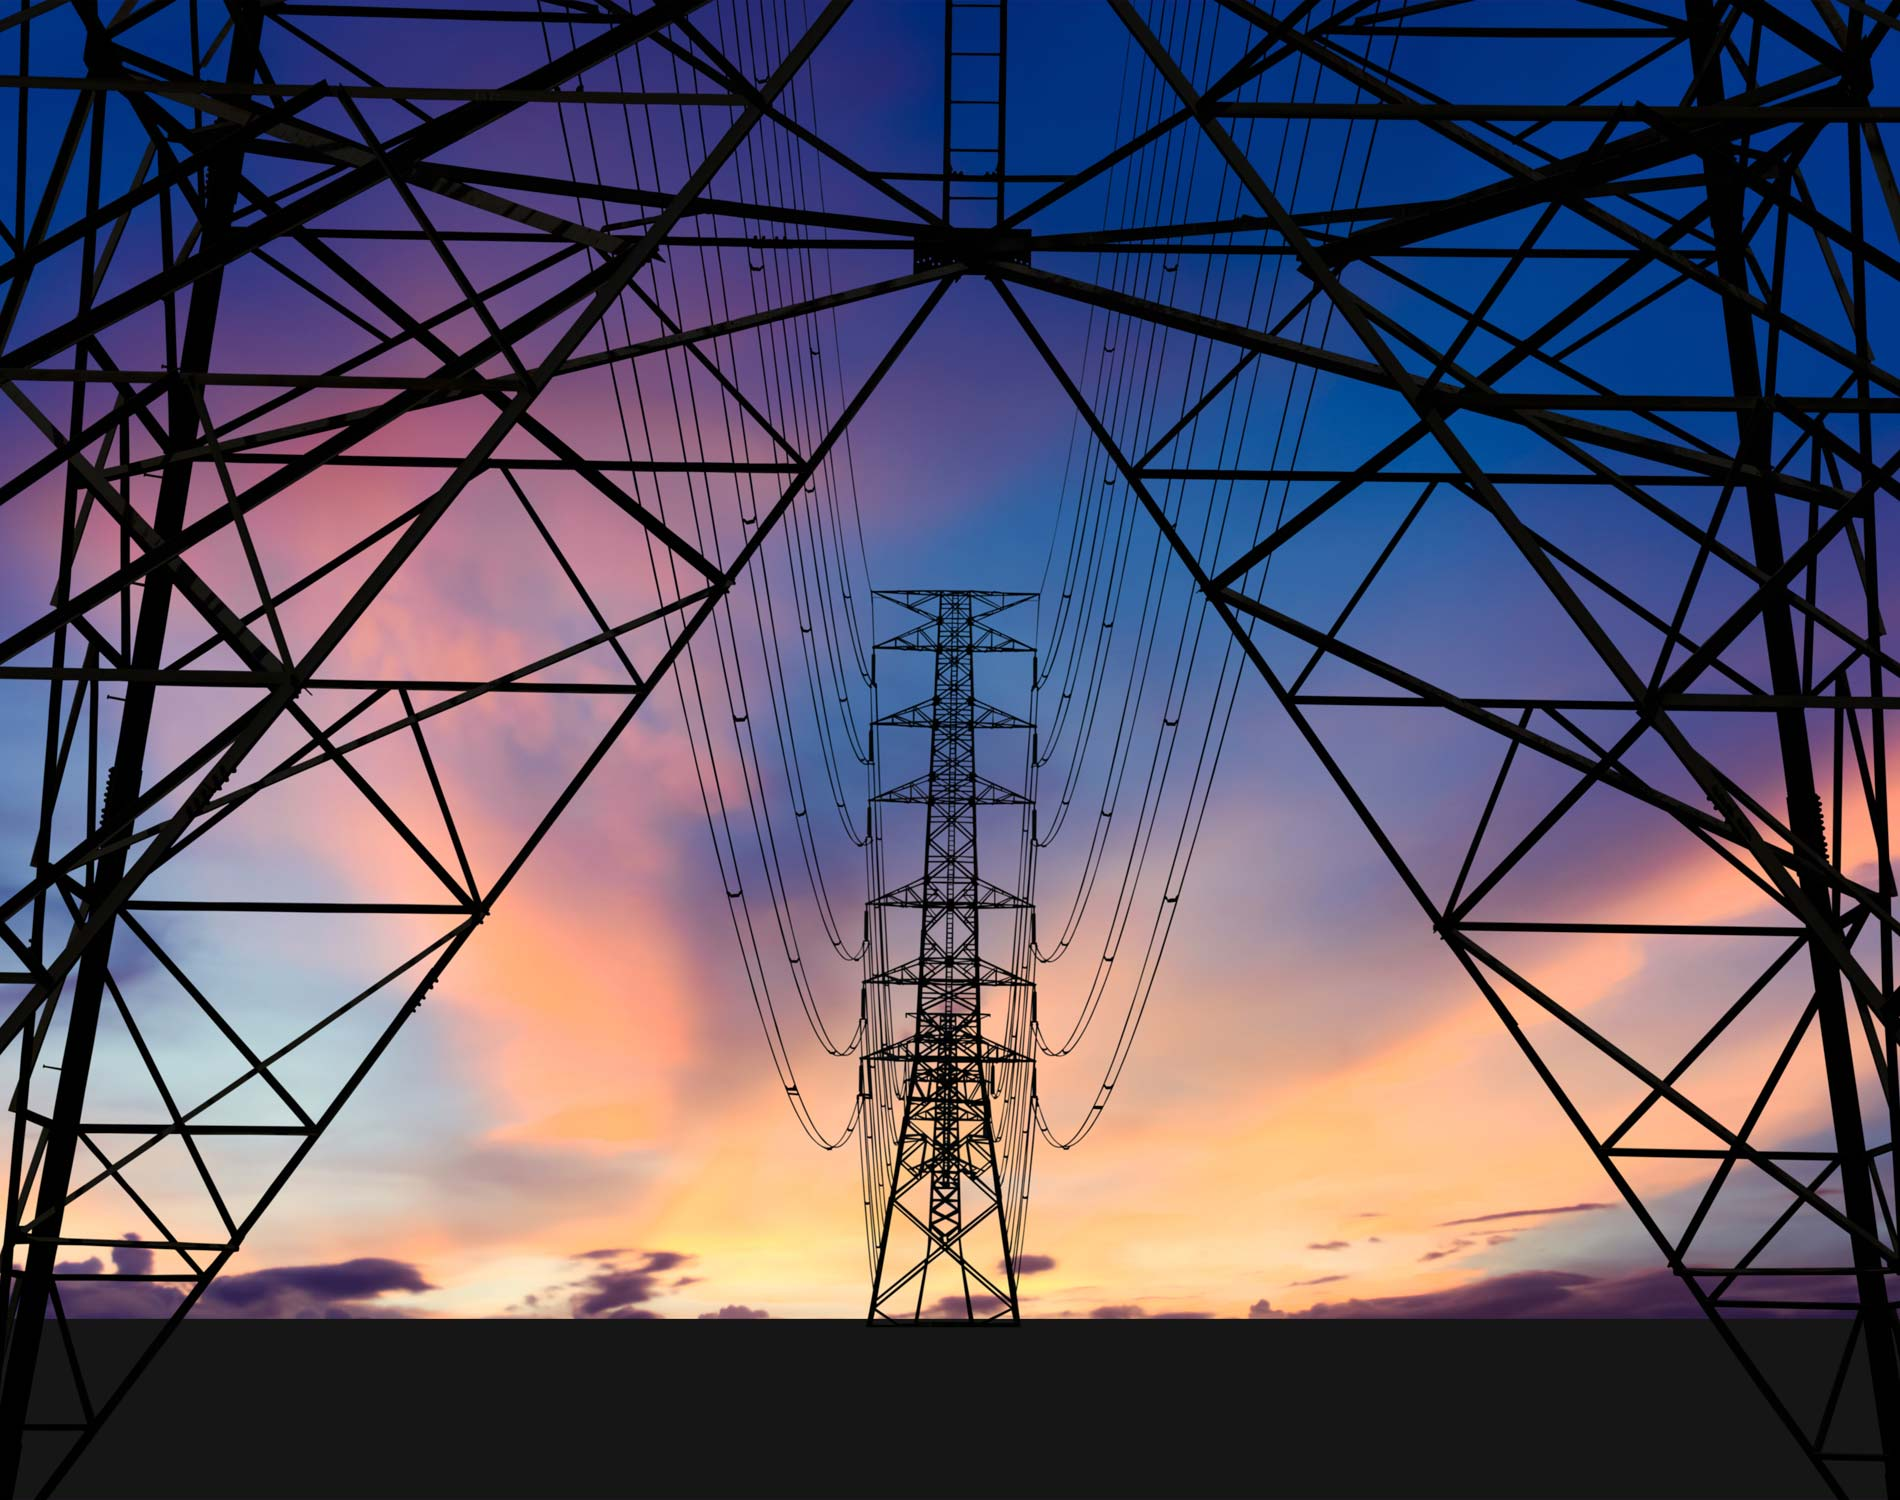 /-/media/images/website/background-images/industry-sectors/energy/energy_electric_towers.ashx